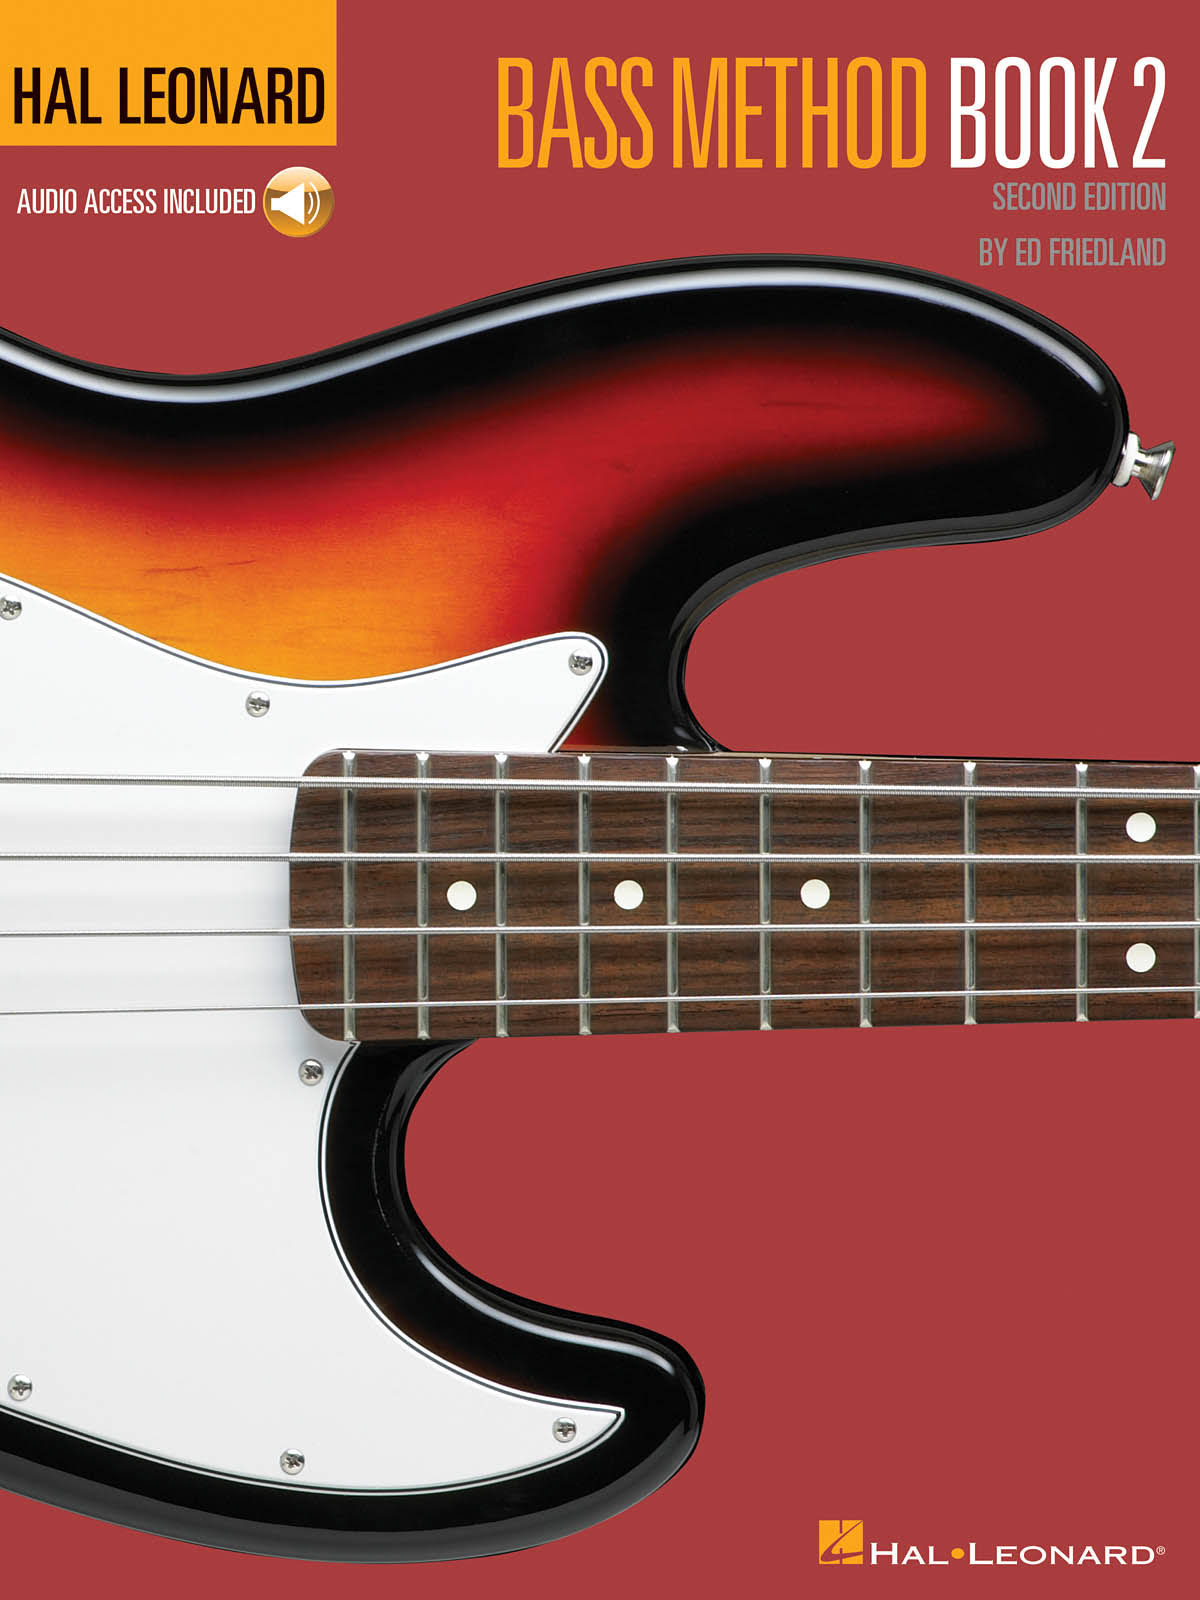 Hal Leonard Bass Method Book 2 - Ed Friedland